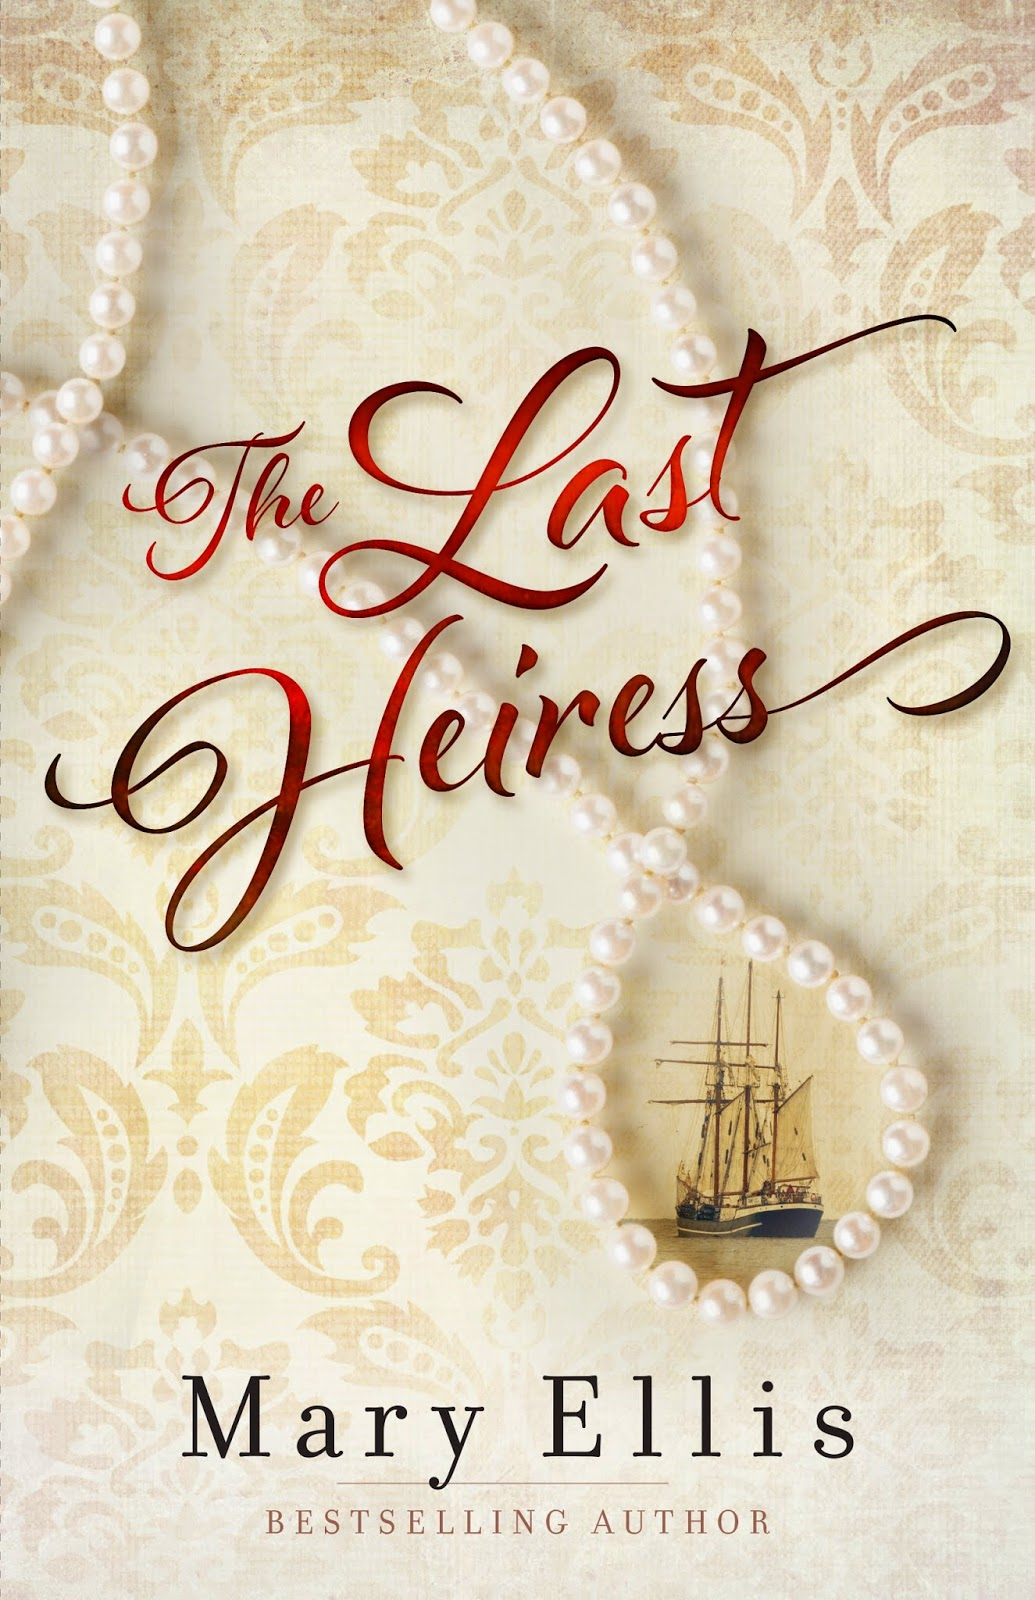 http://www.amazon.com/Last-Heiress-Mary-Ellis-ebook/dp/B00RYB9NHY/ref=sr_1_1?ie=UTF8&qid=1424968960&sr=8-1&keywords=the+last+heiress